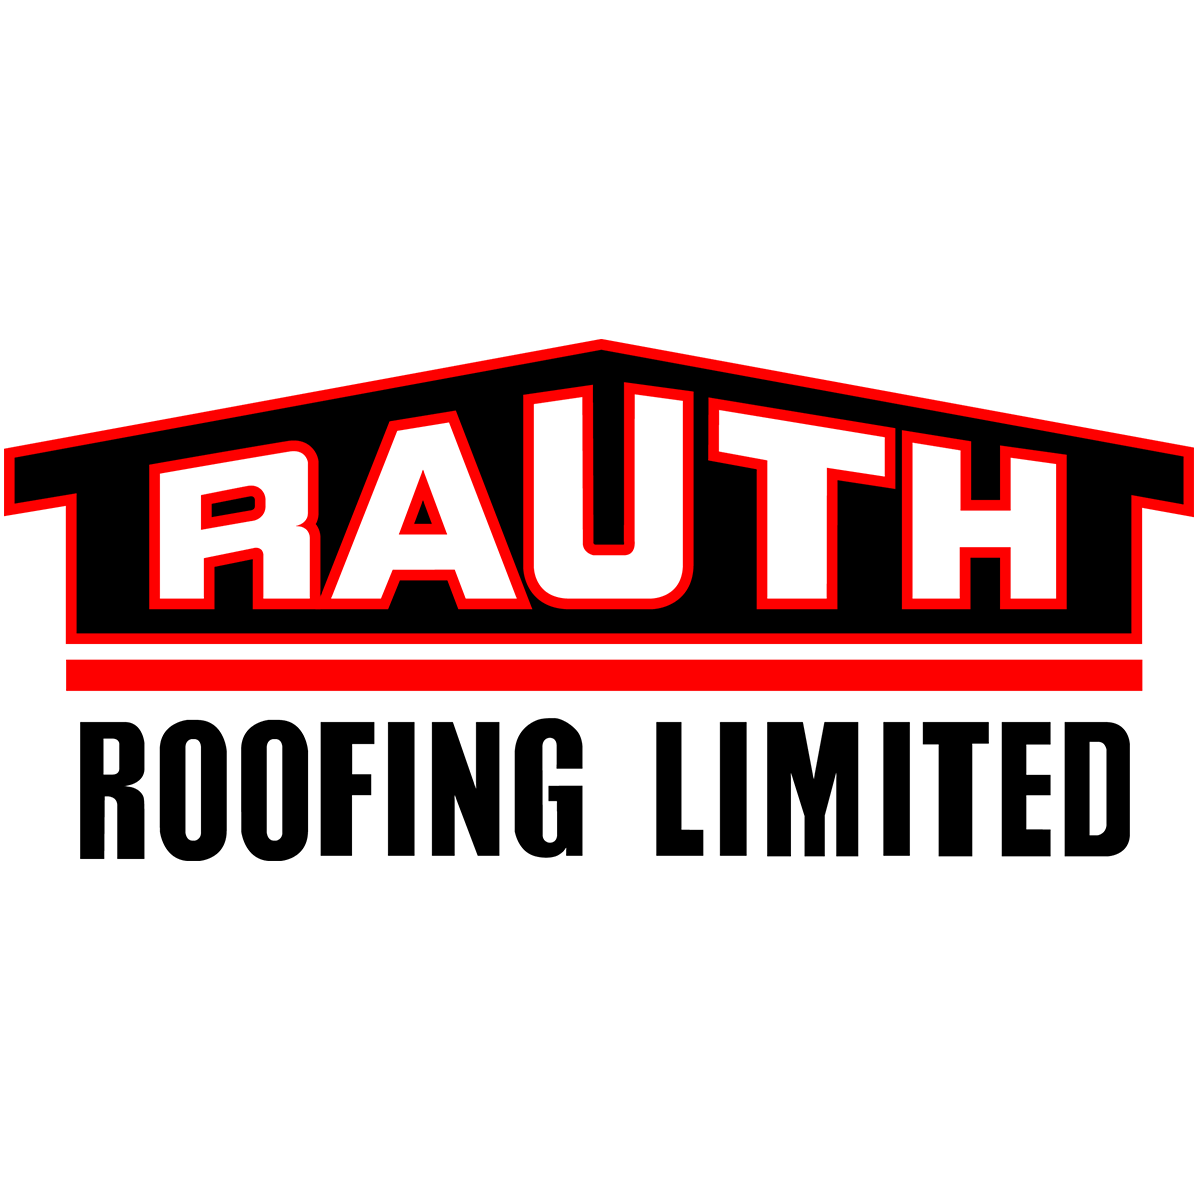 Rauth_Print_High_Res